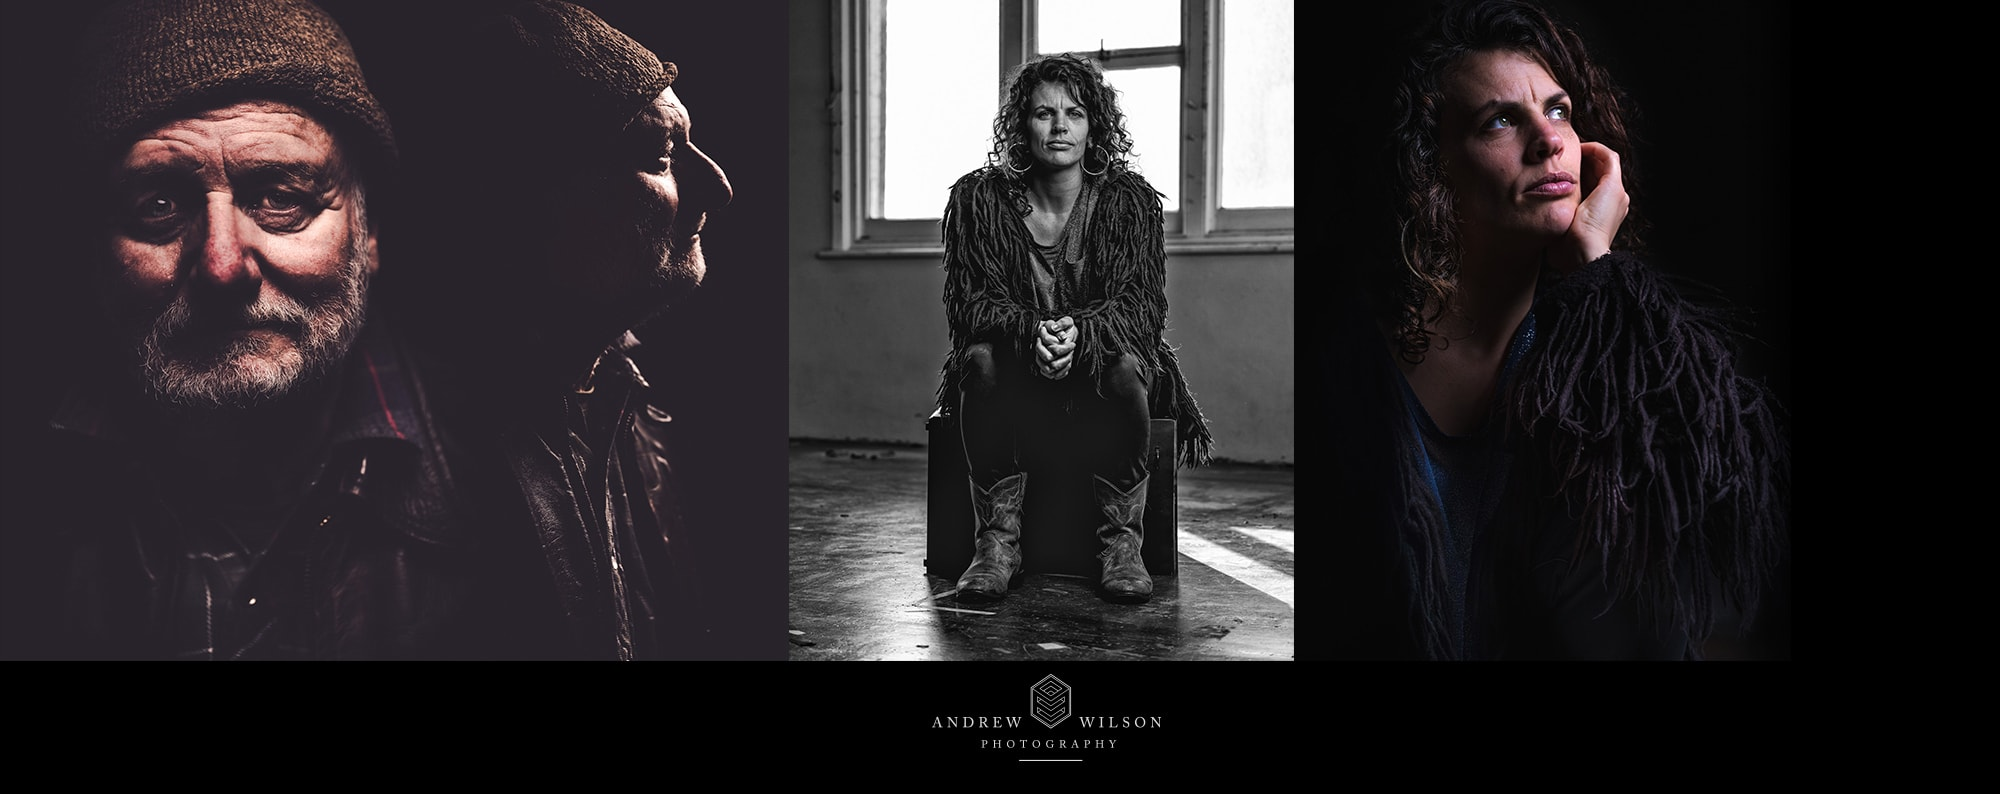 Image of portrait photography by Andrew Wilson